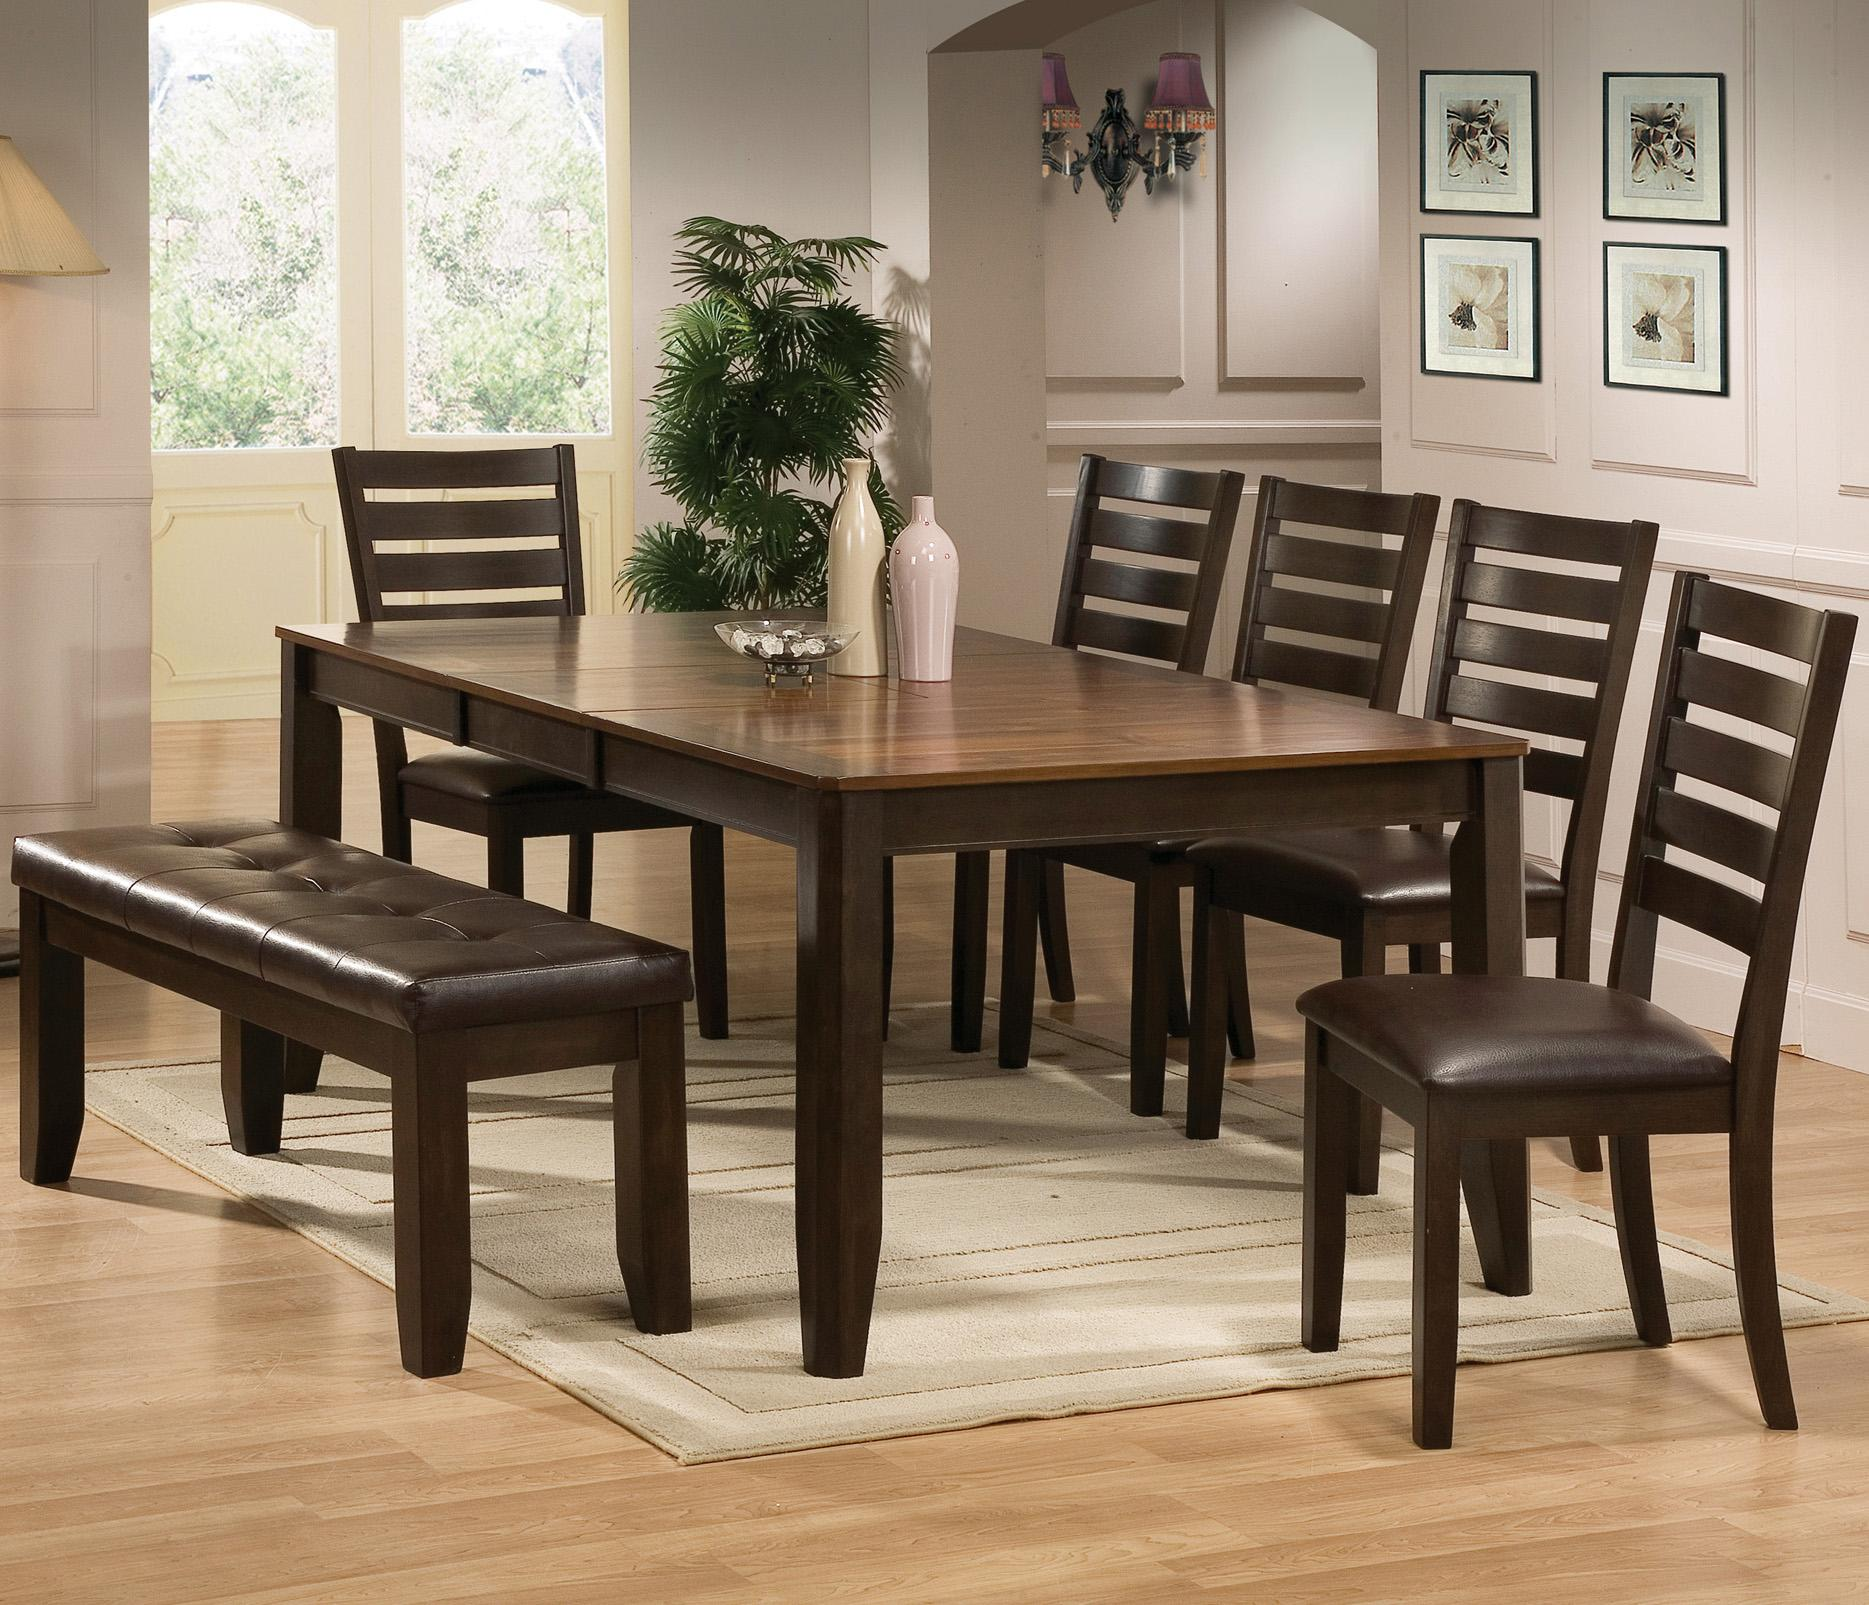 dining to www table throughout chairs set pertaining few awesome piece with prepare round decor room